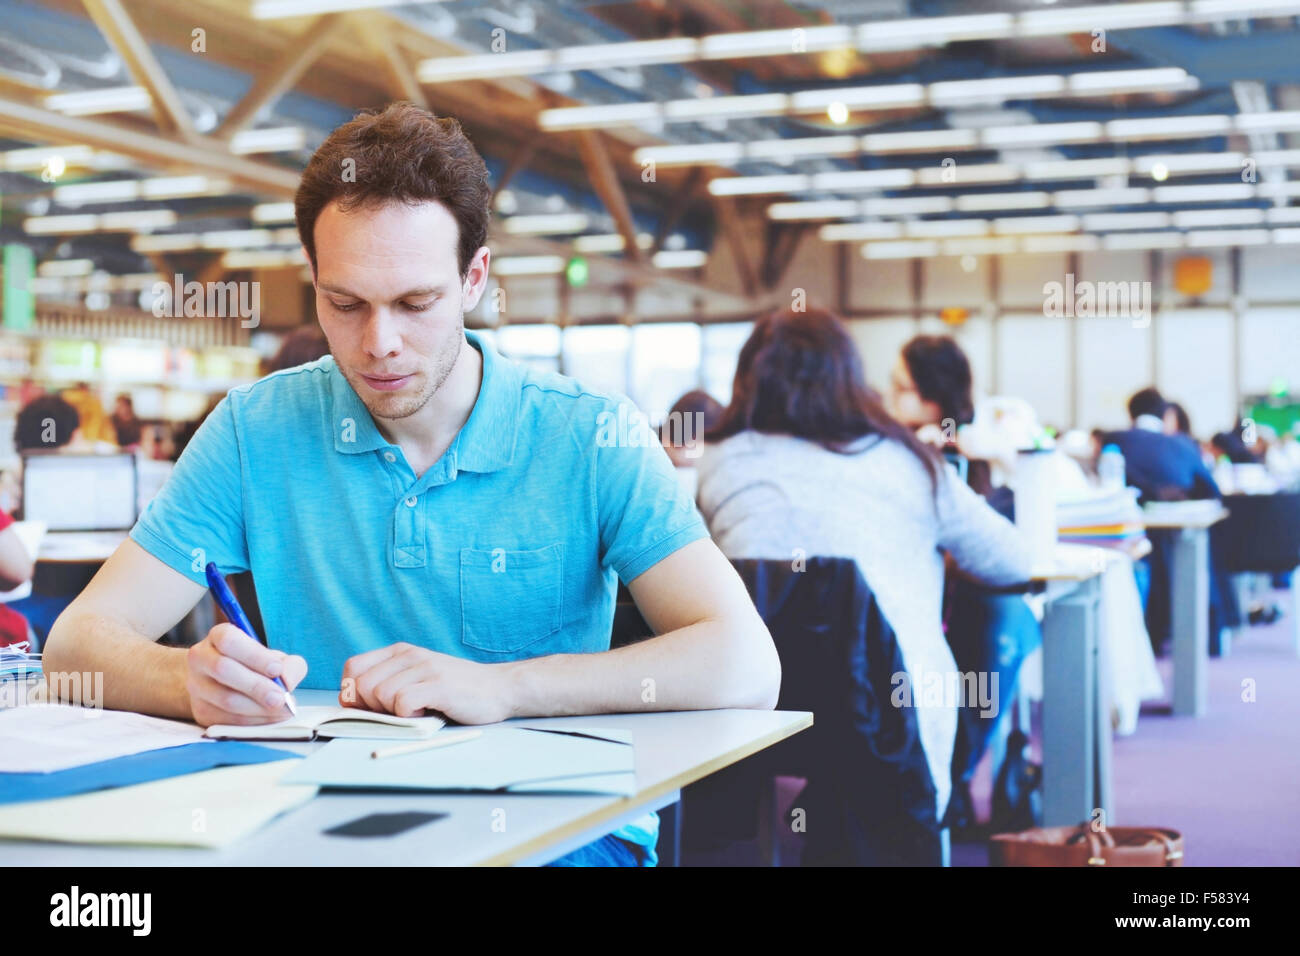 student working in modern public library of university - Stock Image